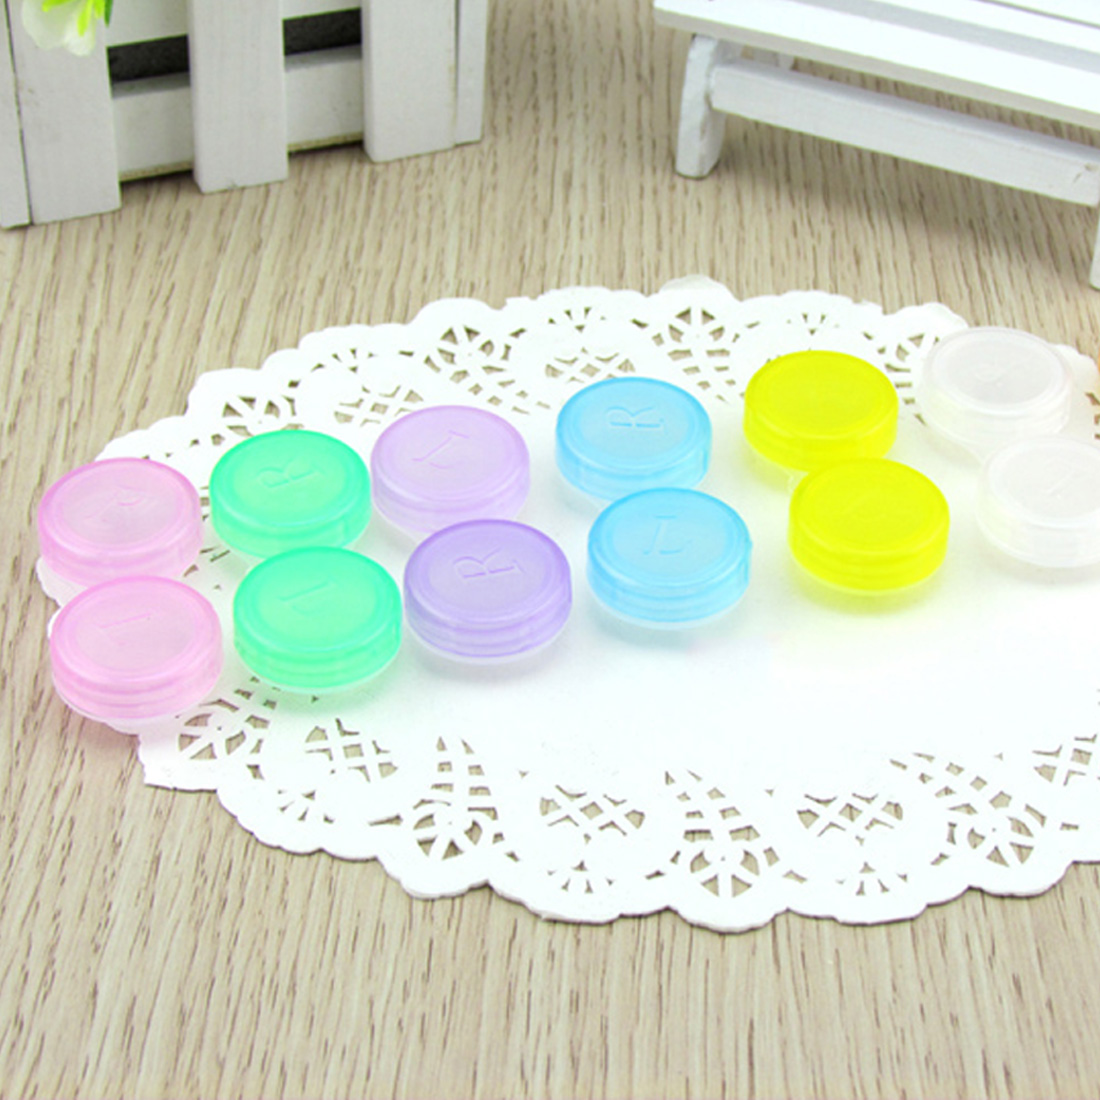 Plastic Contact Lens Box Holder Portable Small Lovely Candy Color Eyewear Bag Container Contact Lenses Soak Color Random